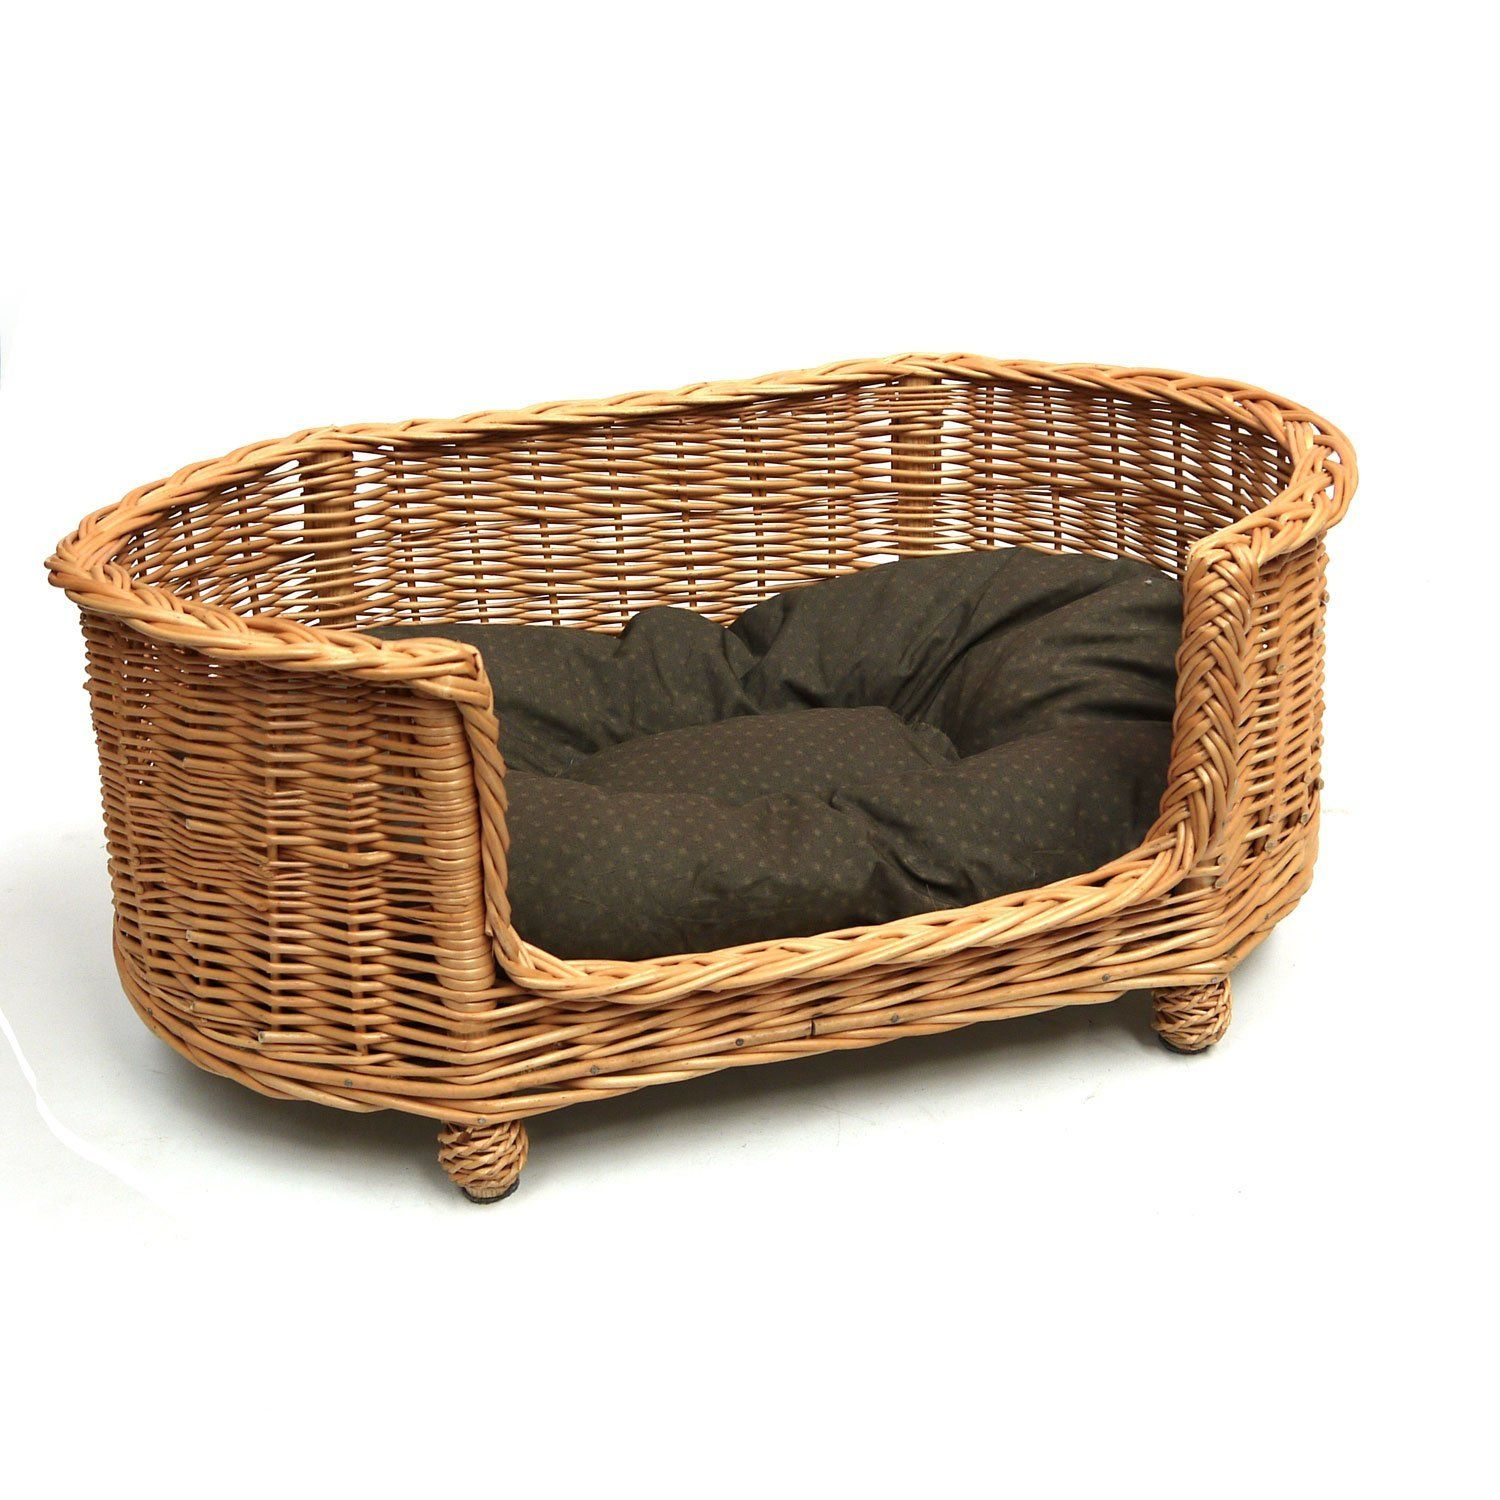 Panier En Osier Wicker : Luxury large wicker dog bed basket settee beds that